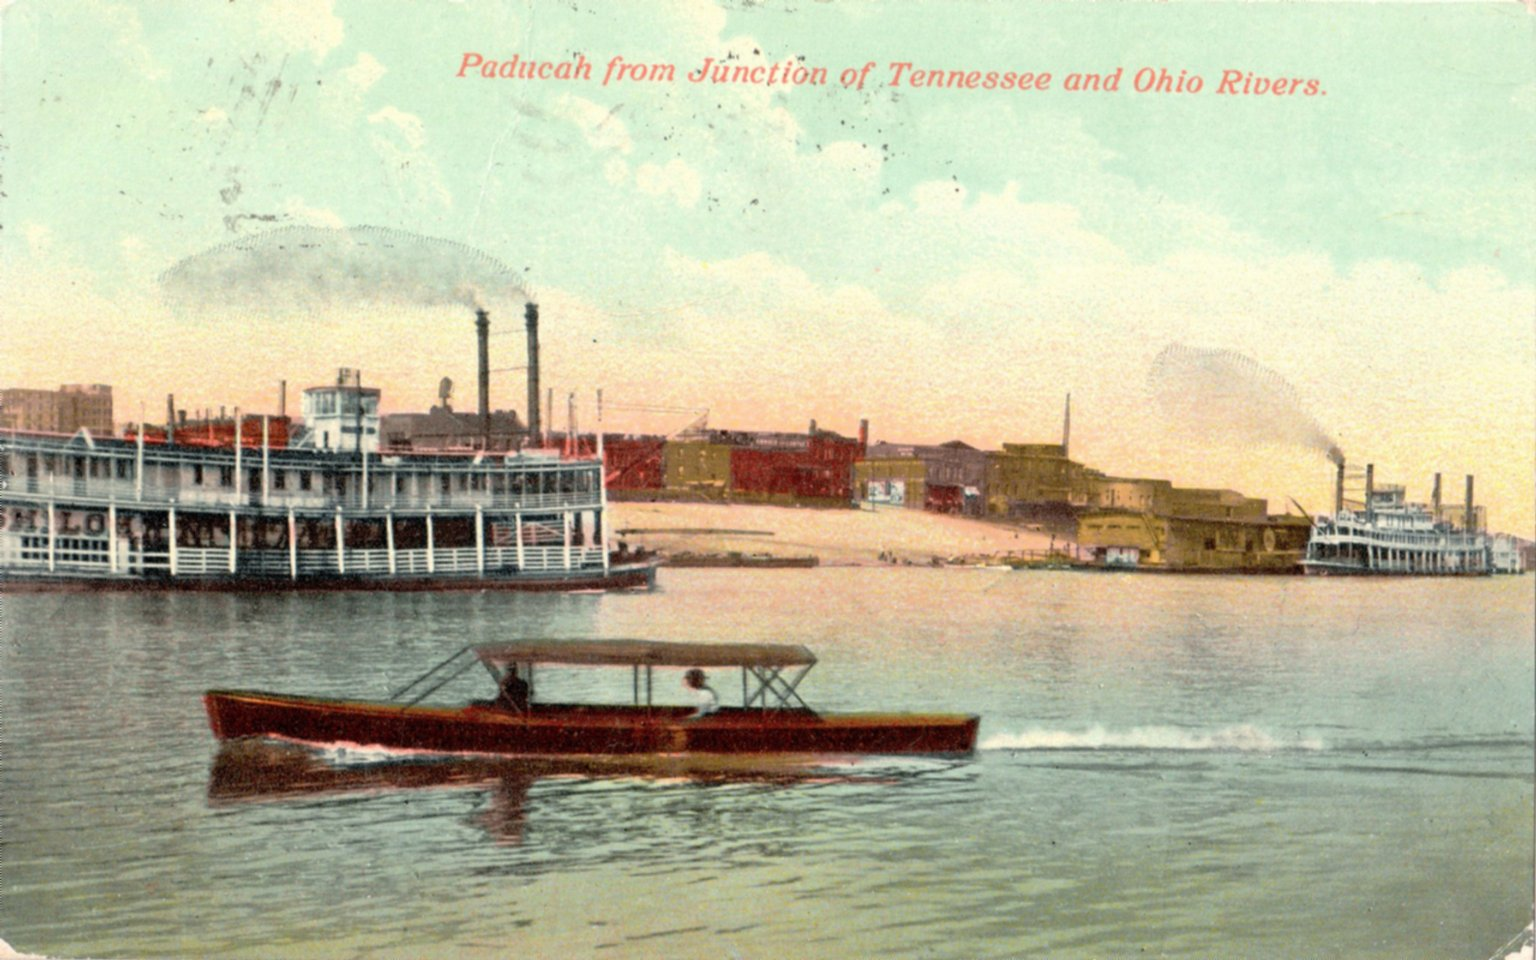 Paducah from Junction of Tennessee and Ohio Rivers